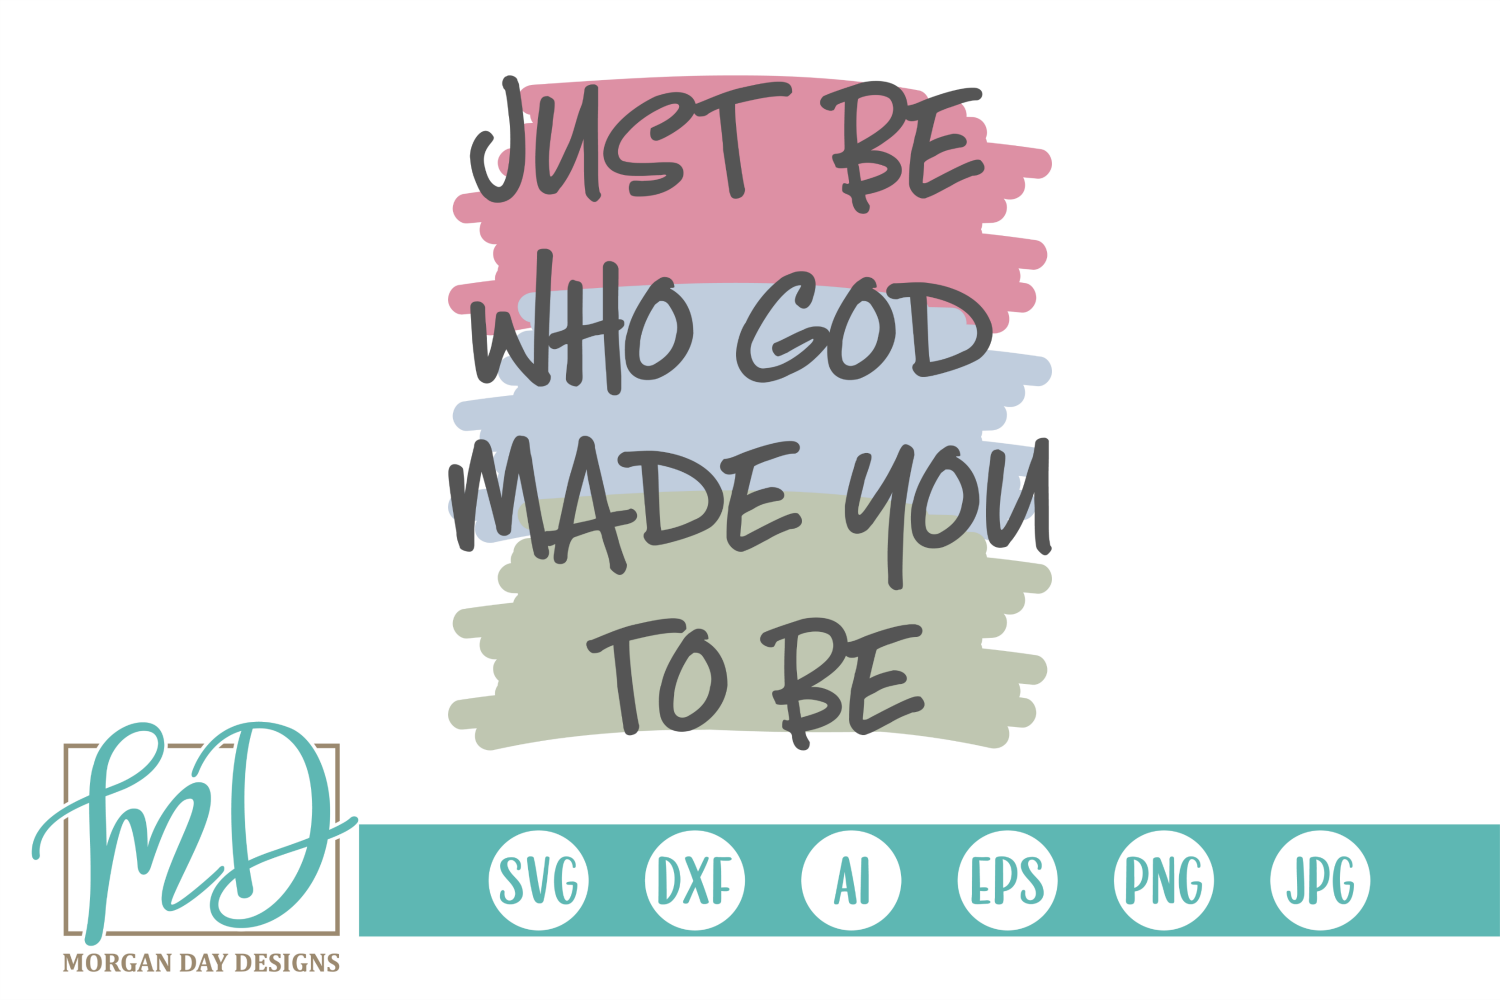 Christian - Just Be Who God Made You To Be SVG example image 2